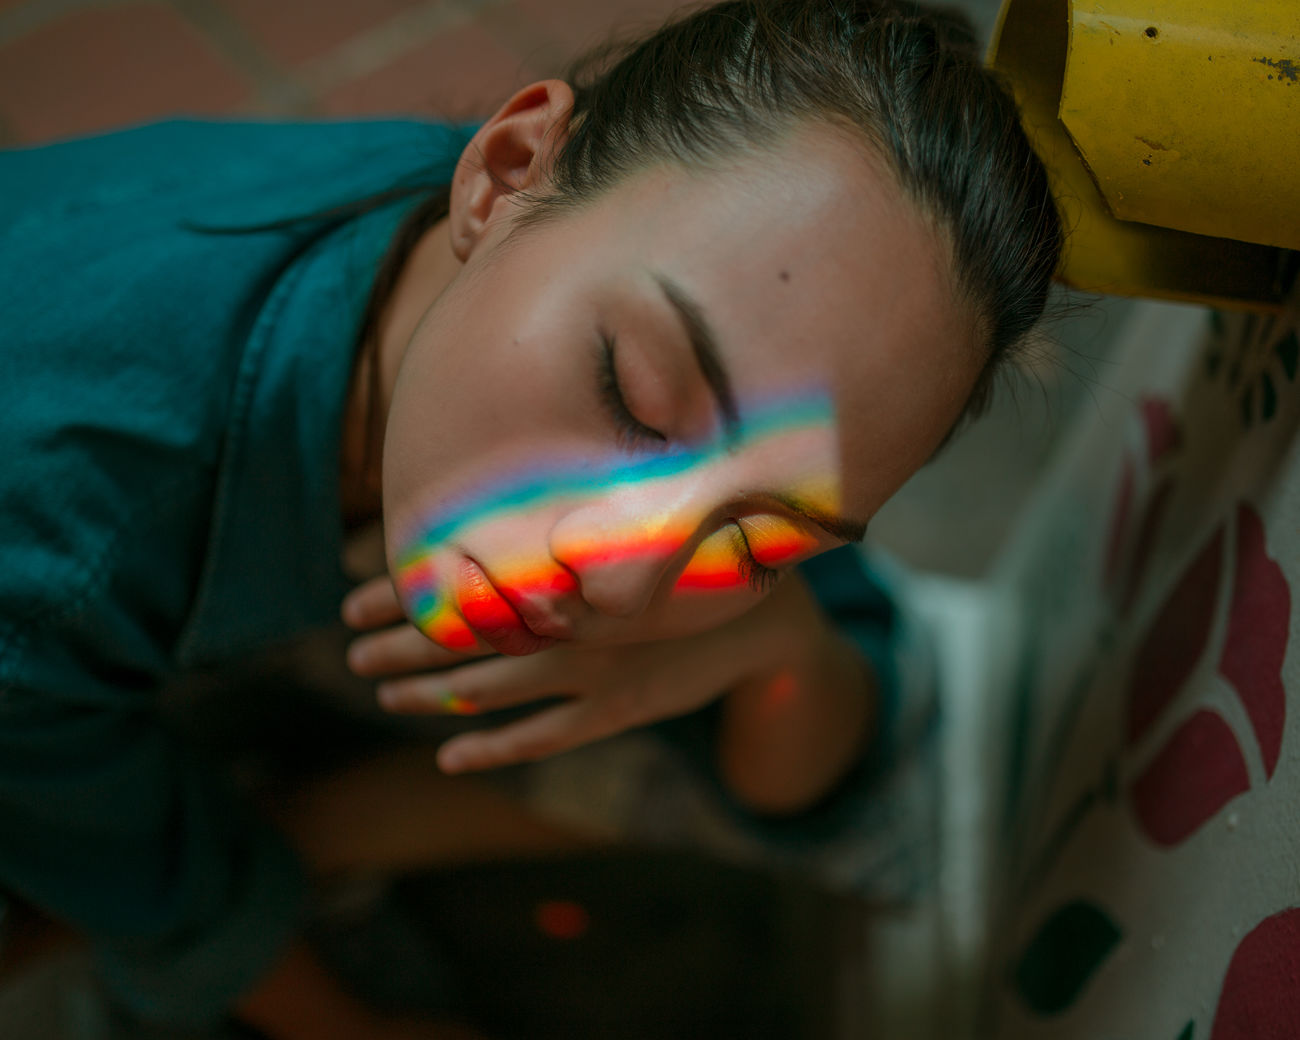 settle down, dear heart Close-up Place Of Heart The Portraitist - 2017 EyeEm Awards Beautiful People Light Collection Portrait Photography Women Around The World Light Portrait Of A Woman Indoors  Dreamlike Light And Shadow Portrait Human Face Multi Colored Rainbow Prism